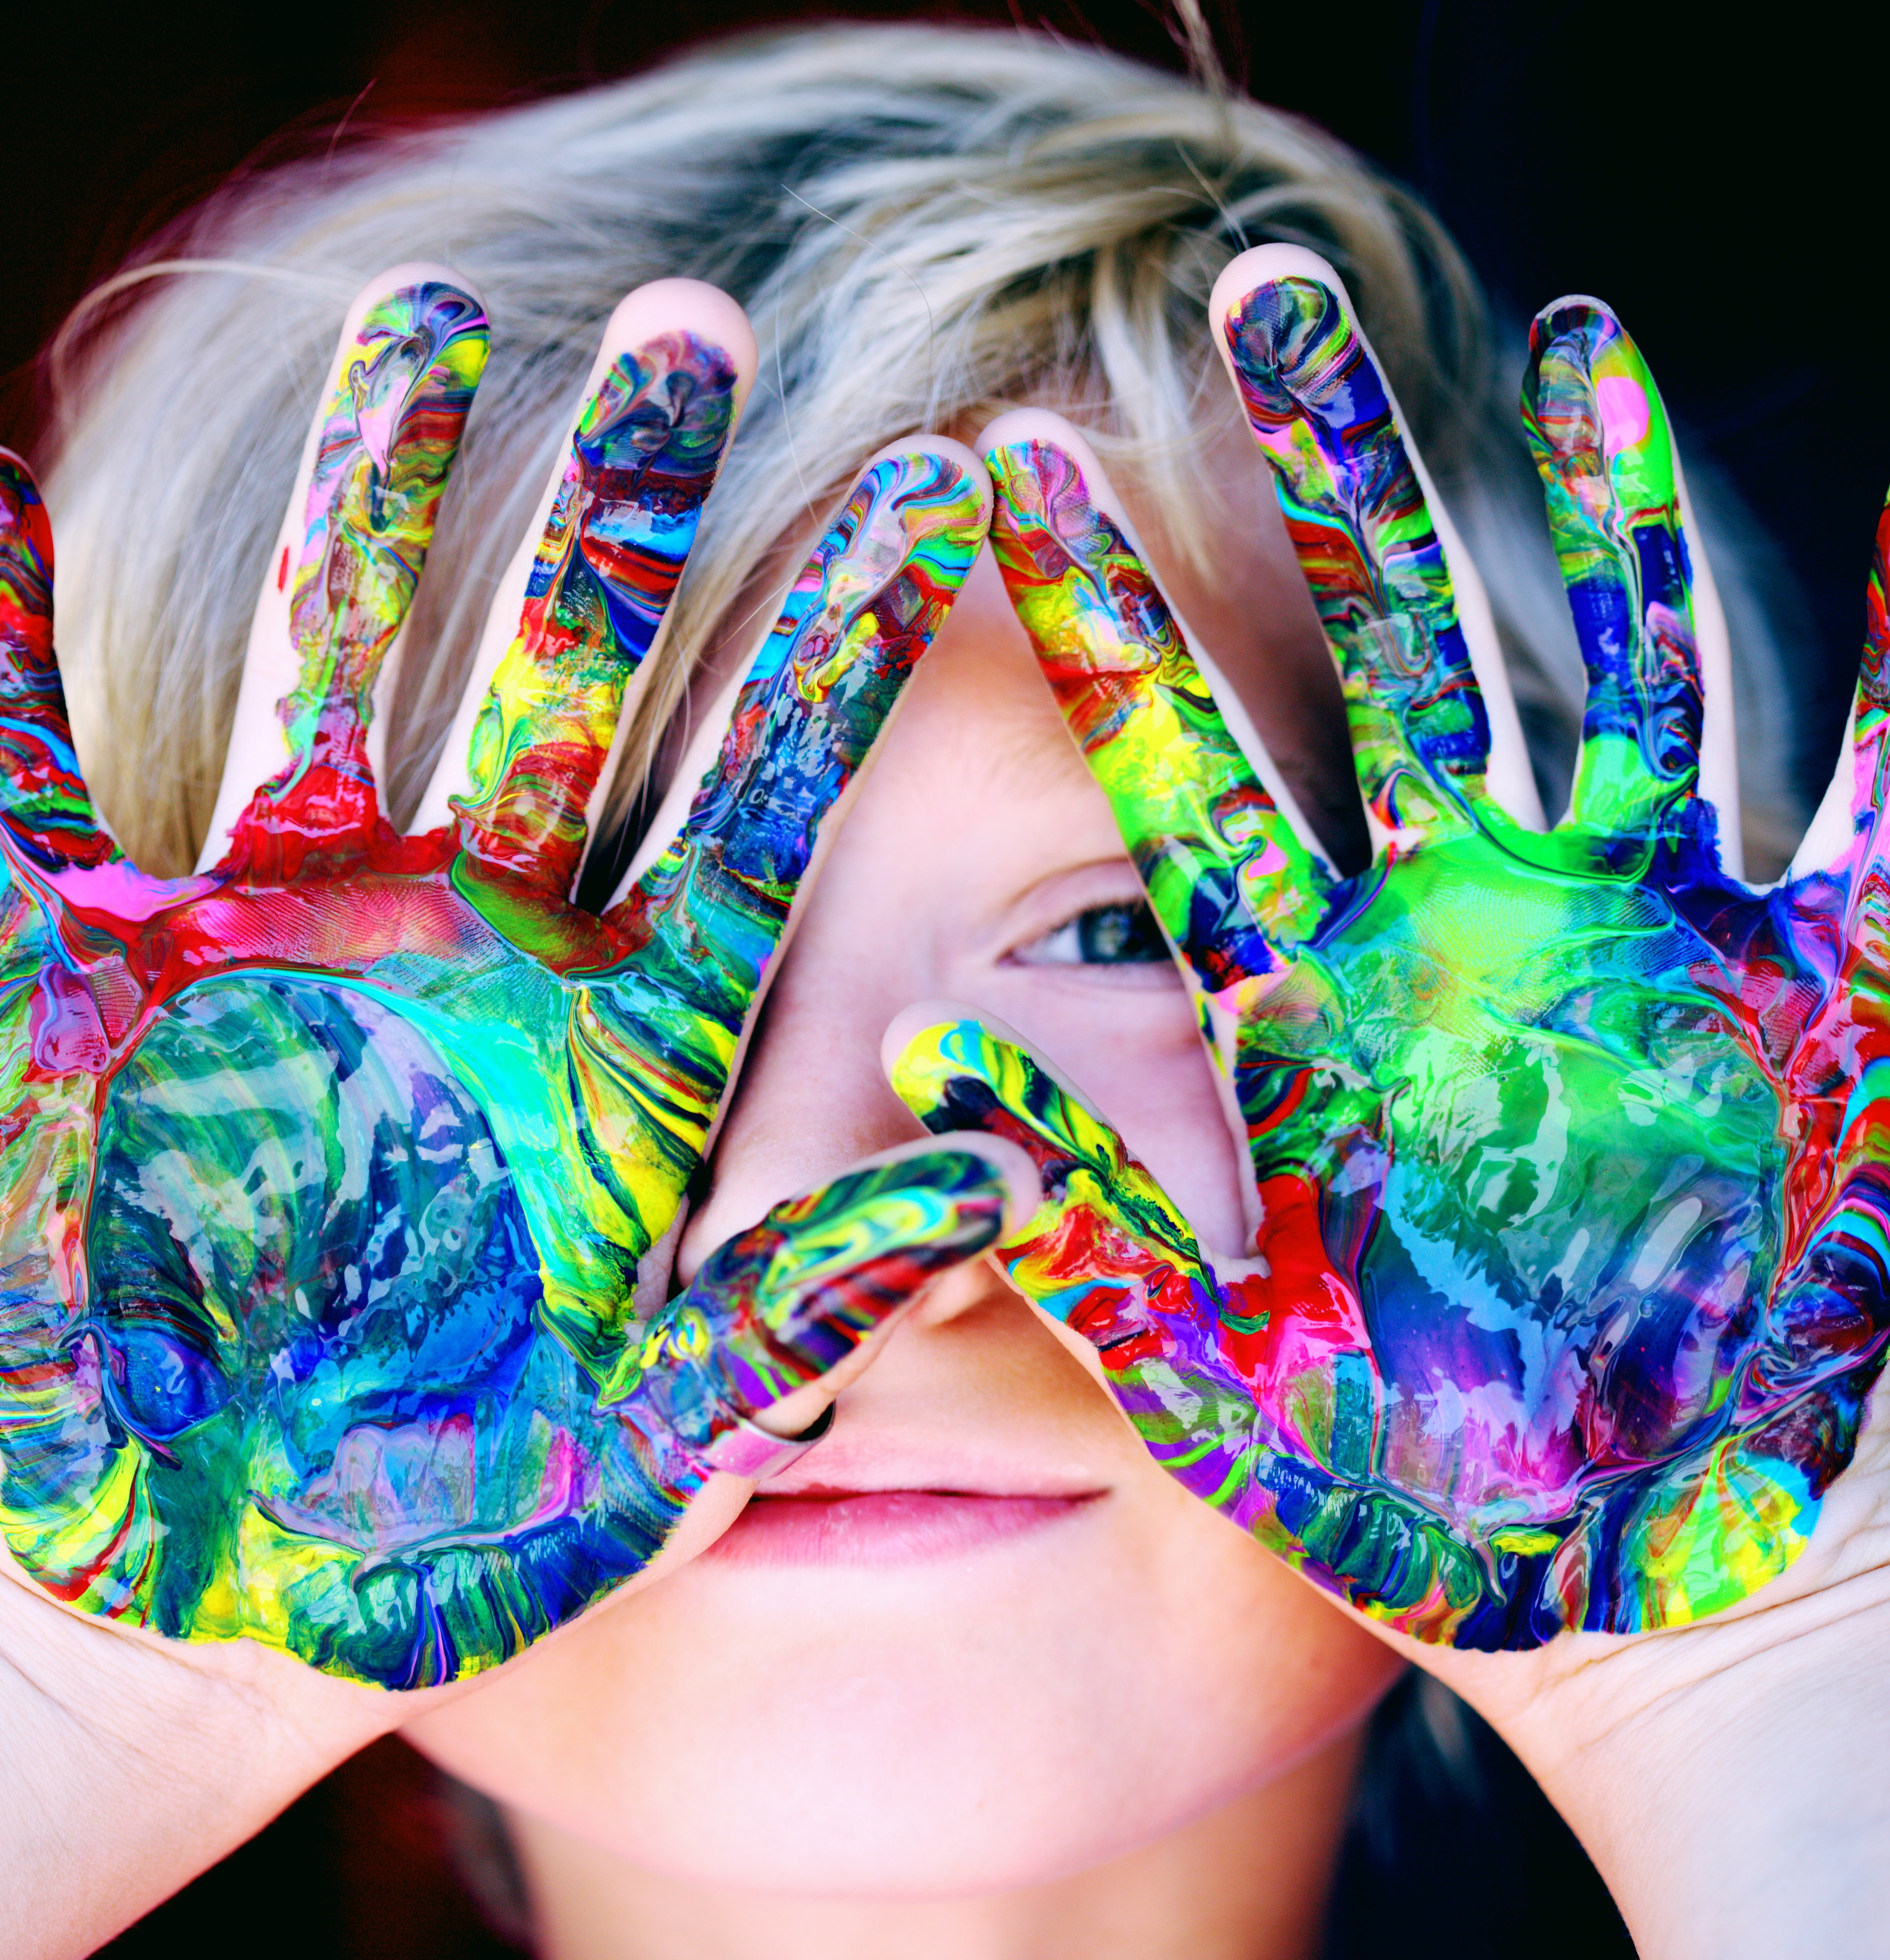 Image of a child with hands covered in paint